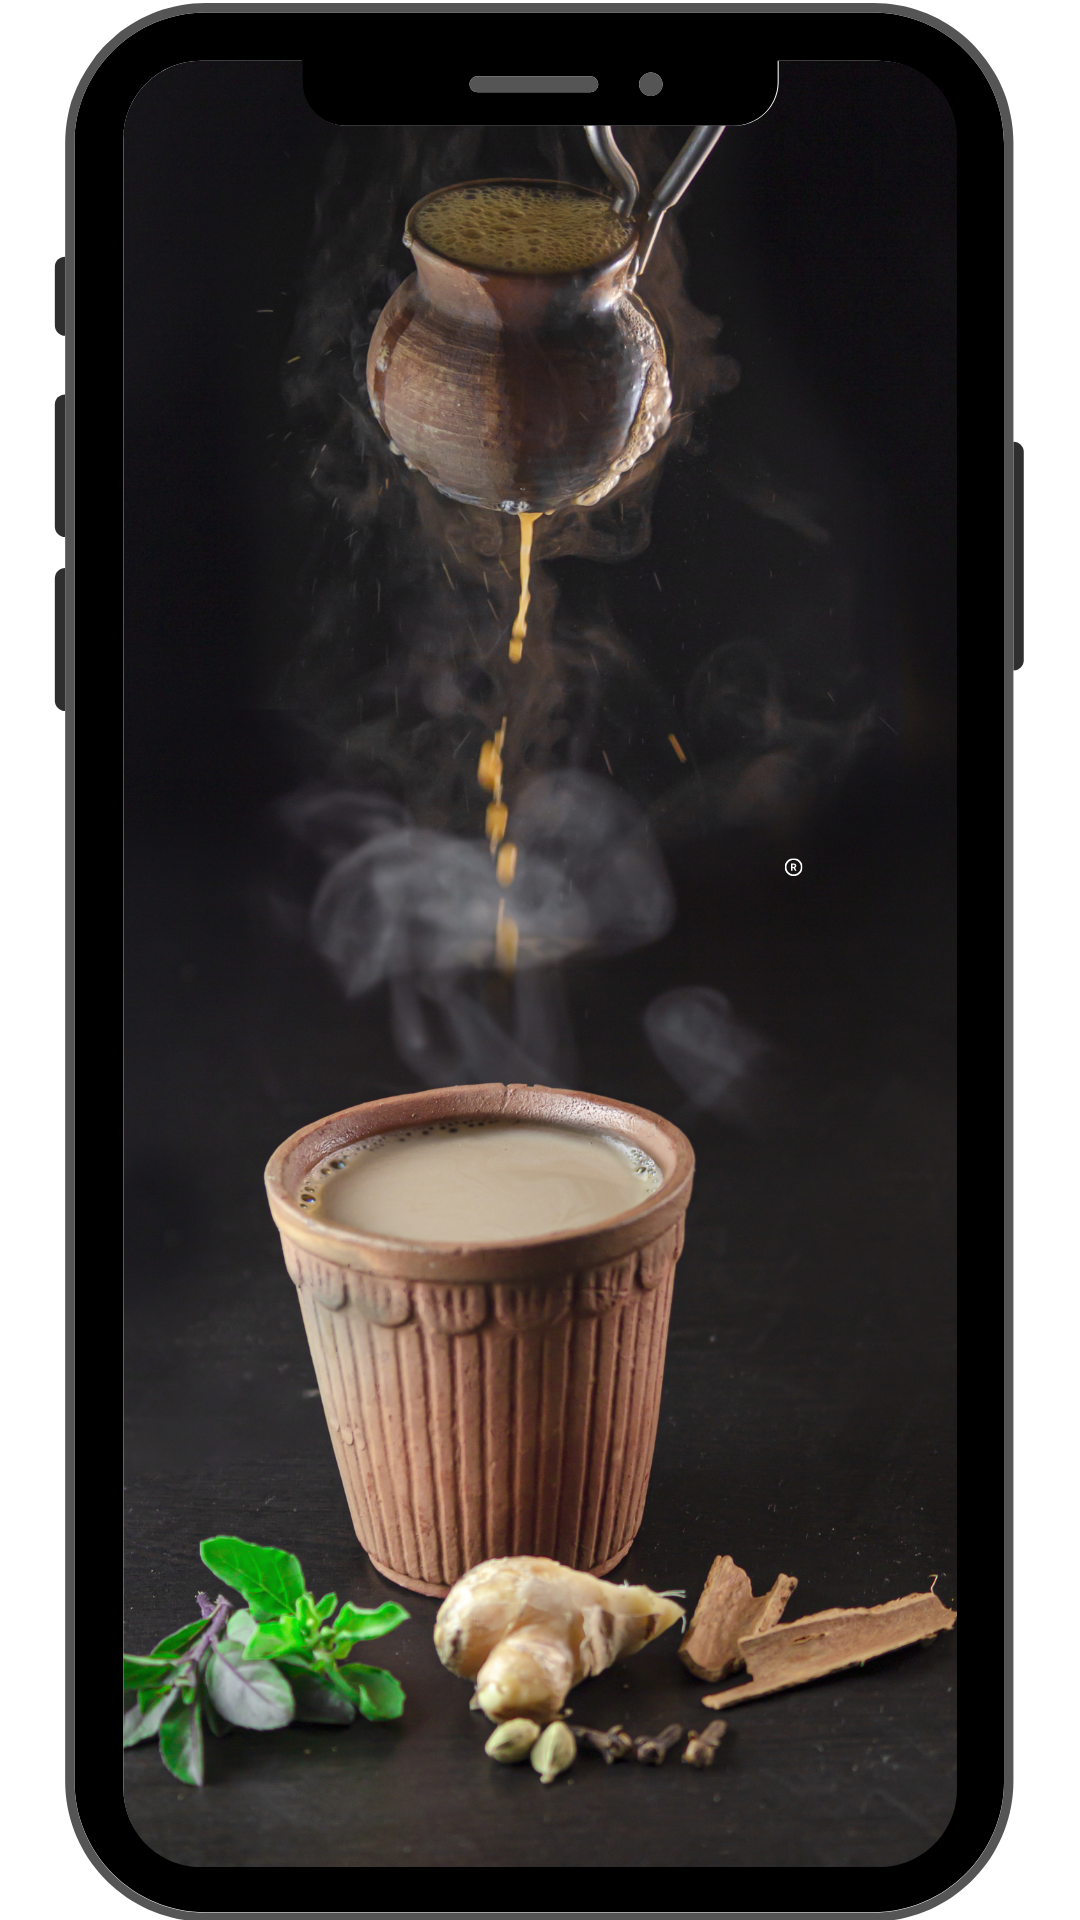 Abstract Iphone Mockup Instagram Story TEA CIRCLE